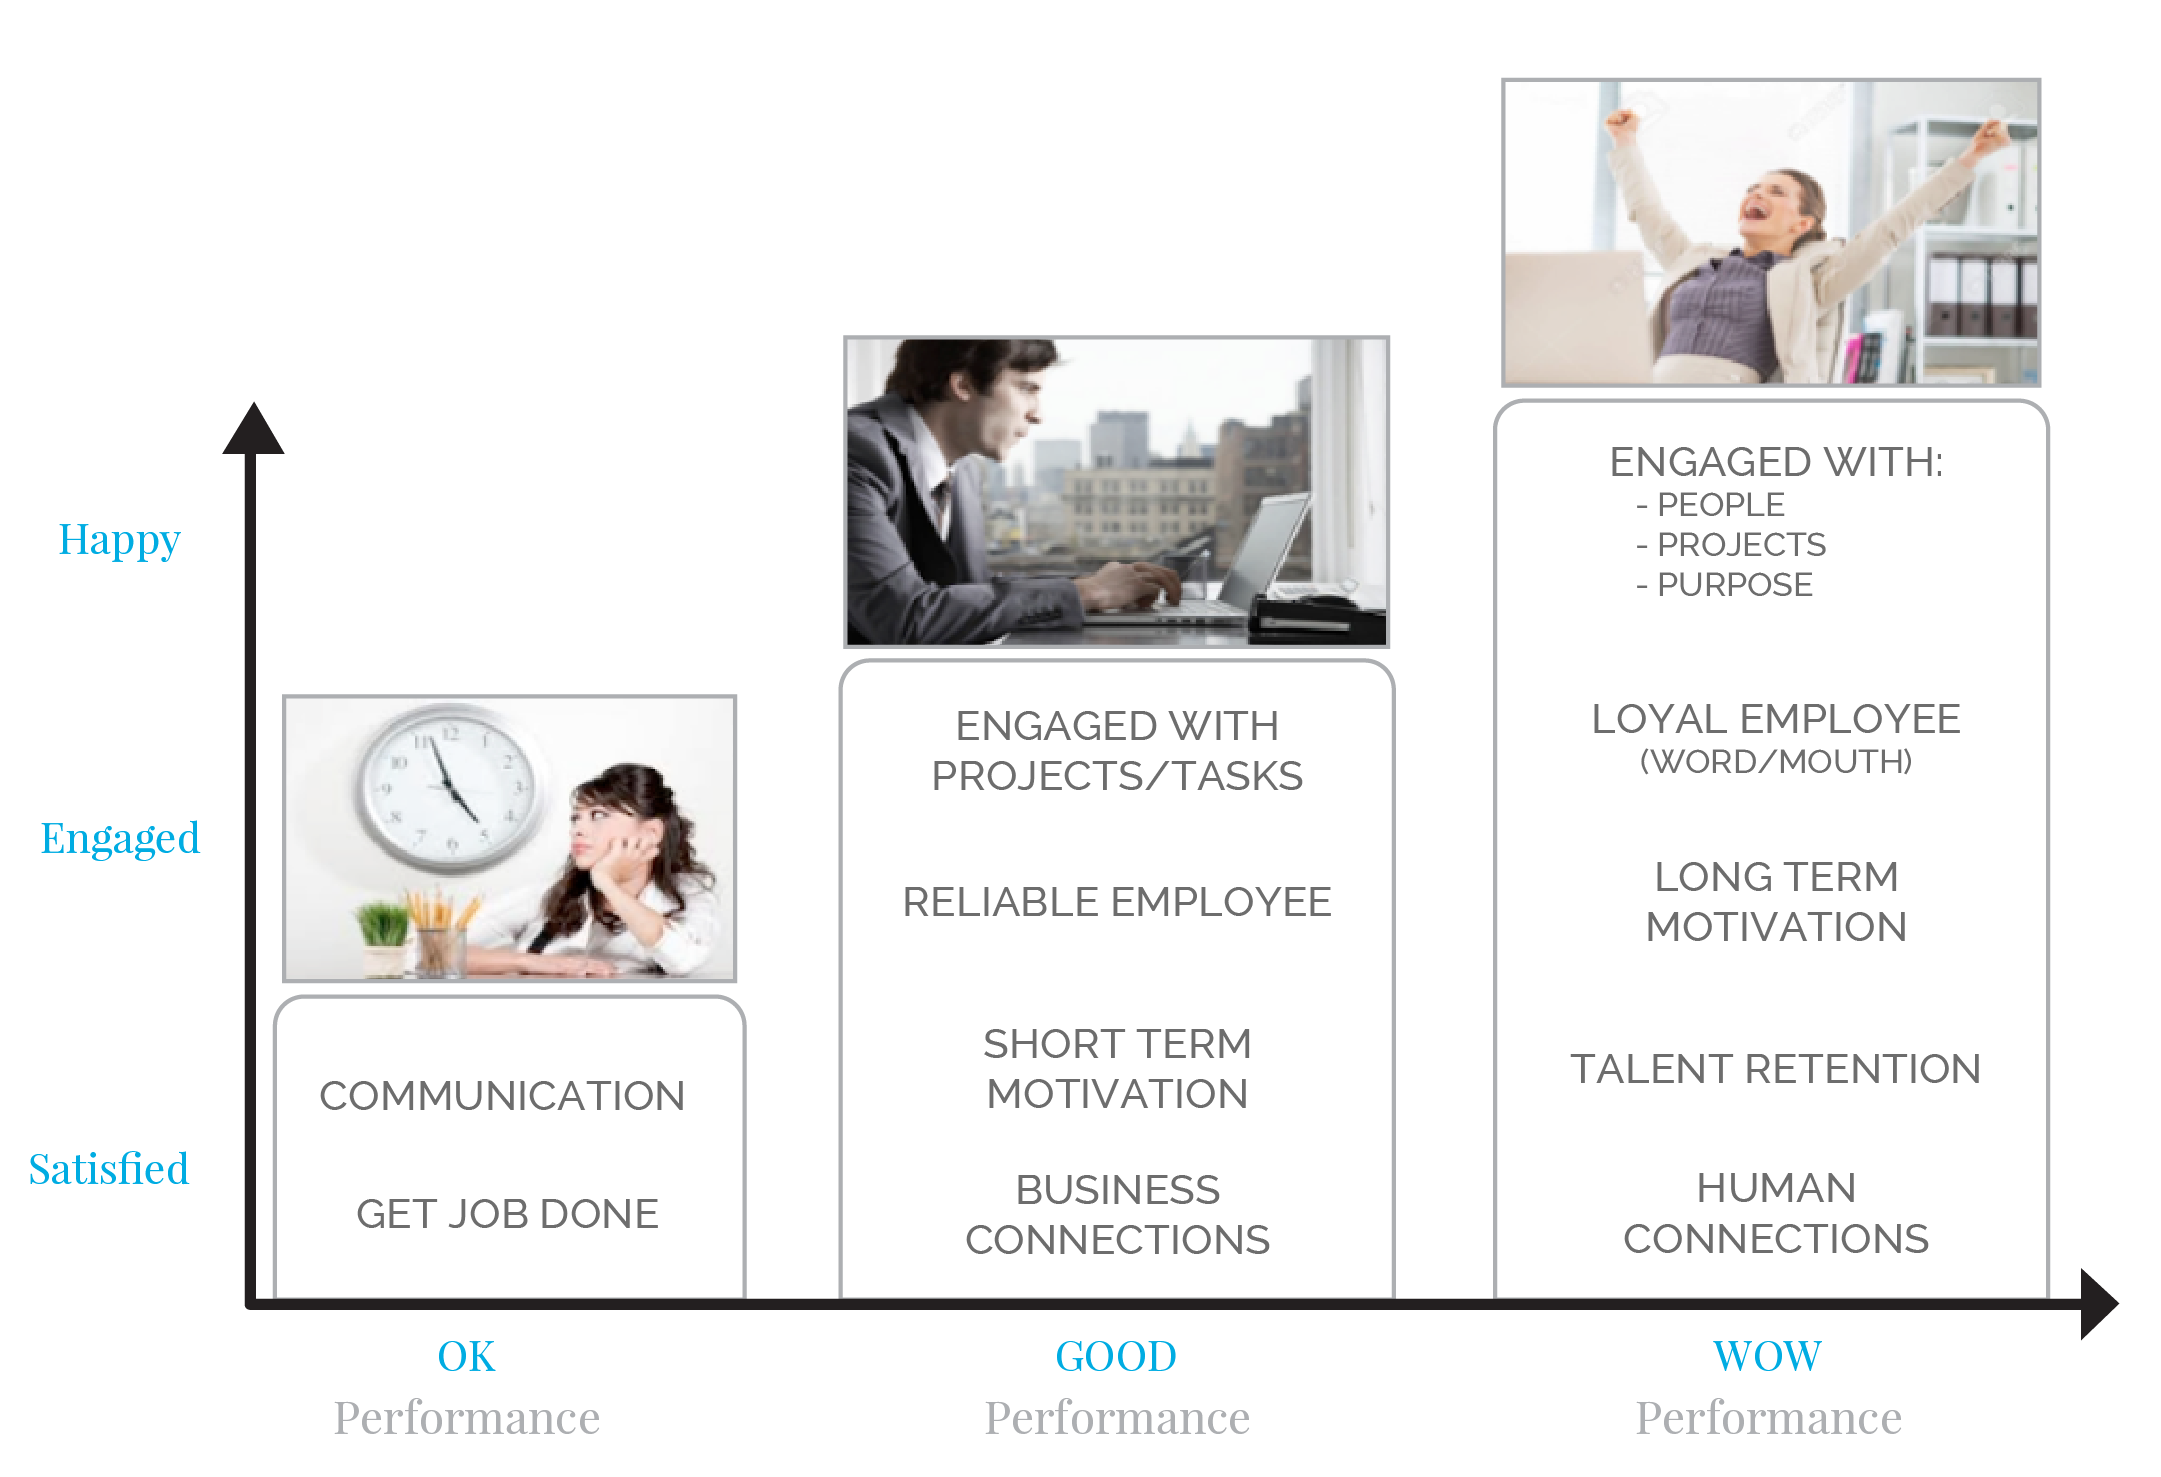 Delivering Happiness Framework Employee Performance Tony Hsieh Jenn Lim